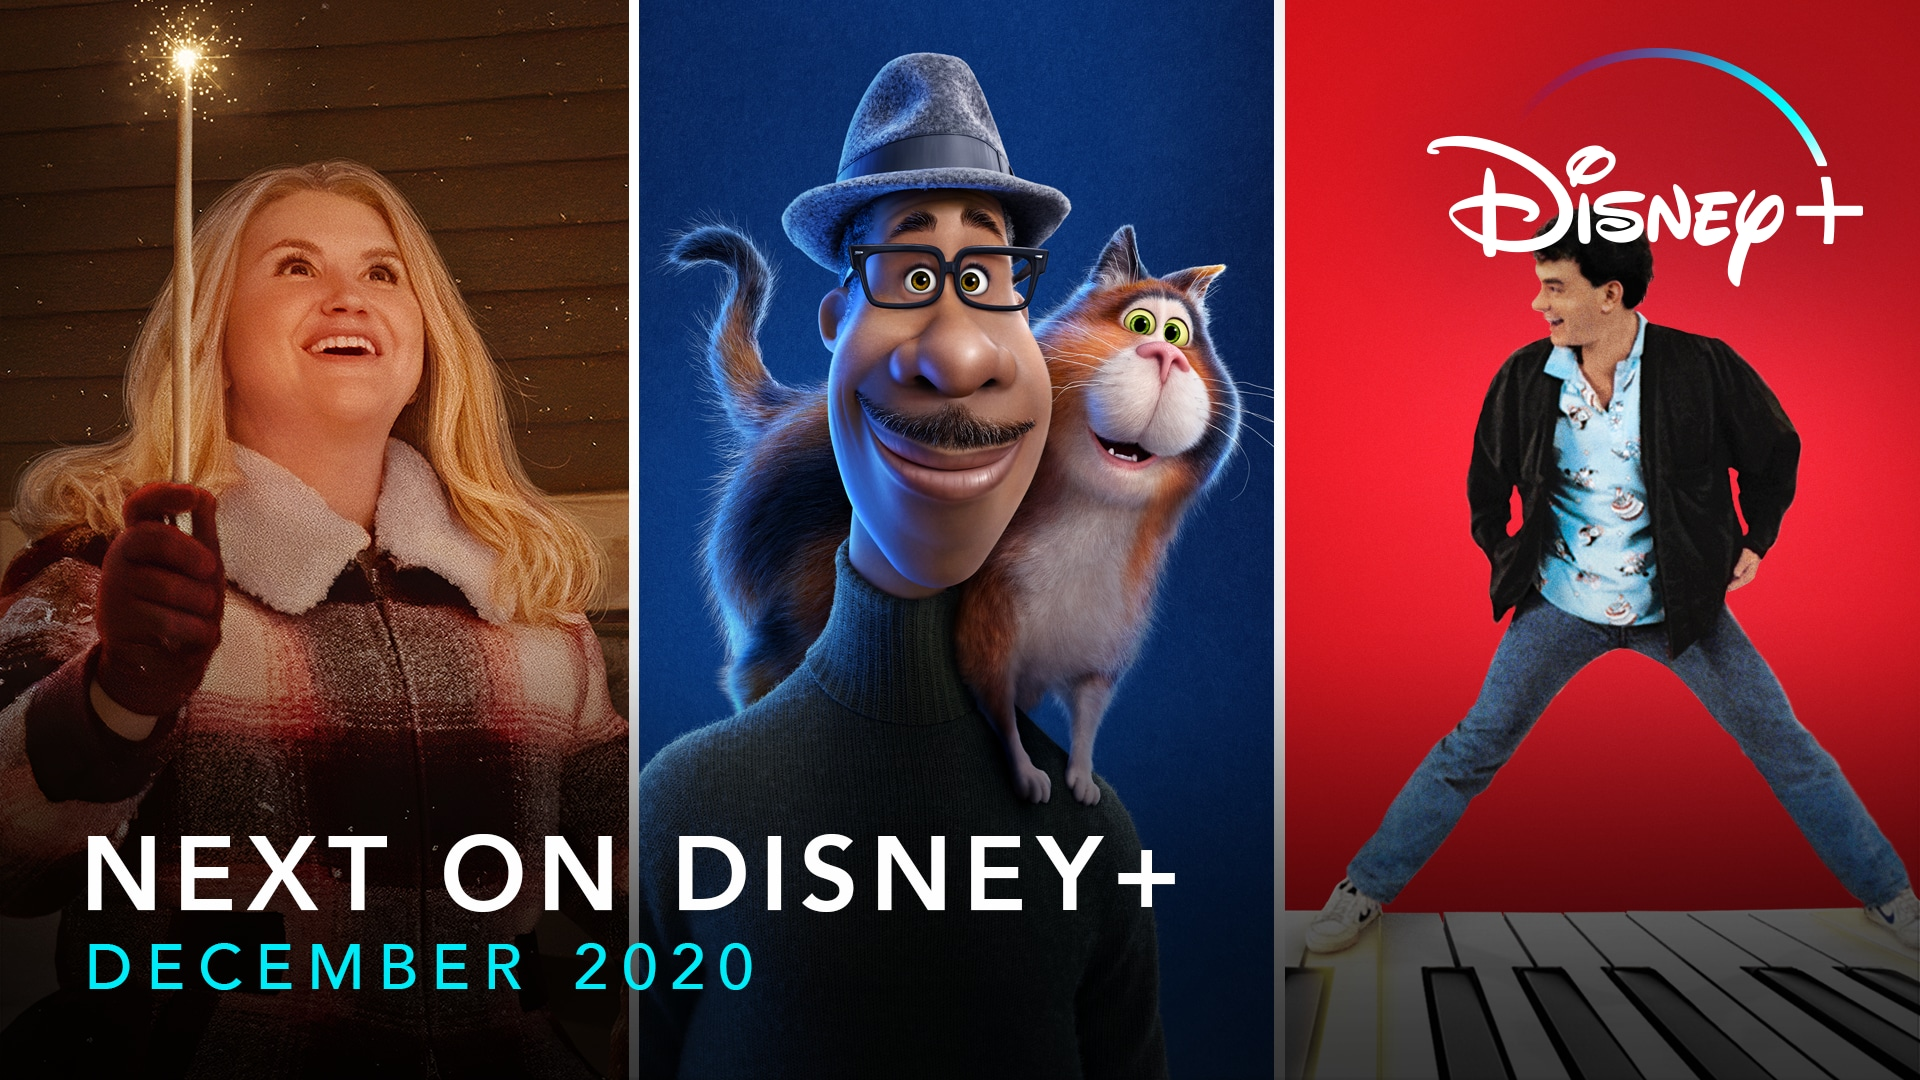 Next On Disney+ - December 2020 | Disney+ | Now Streaming